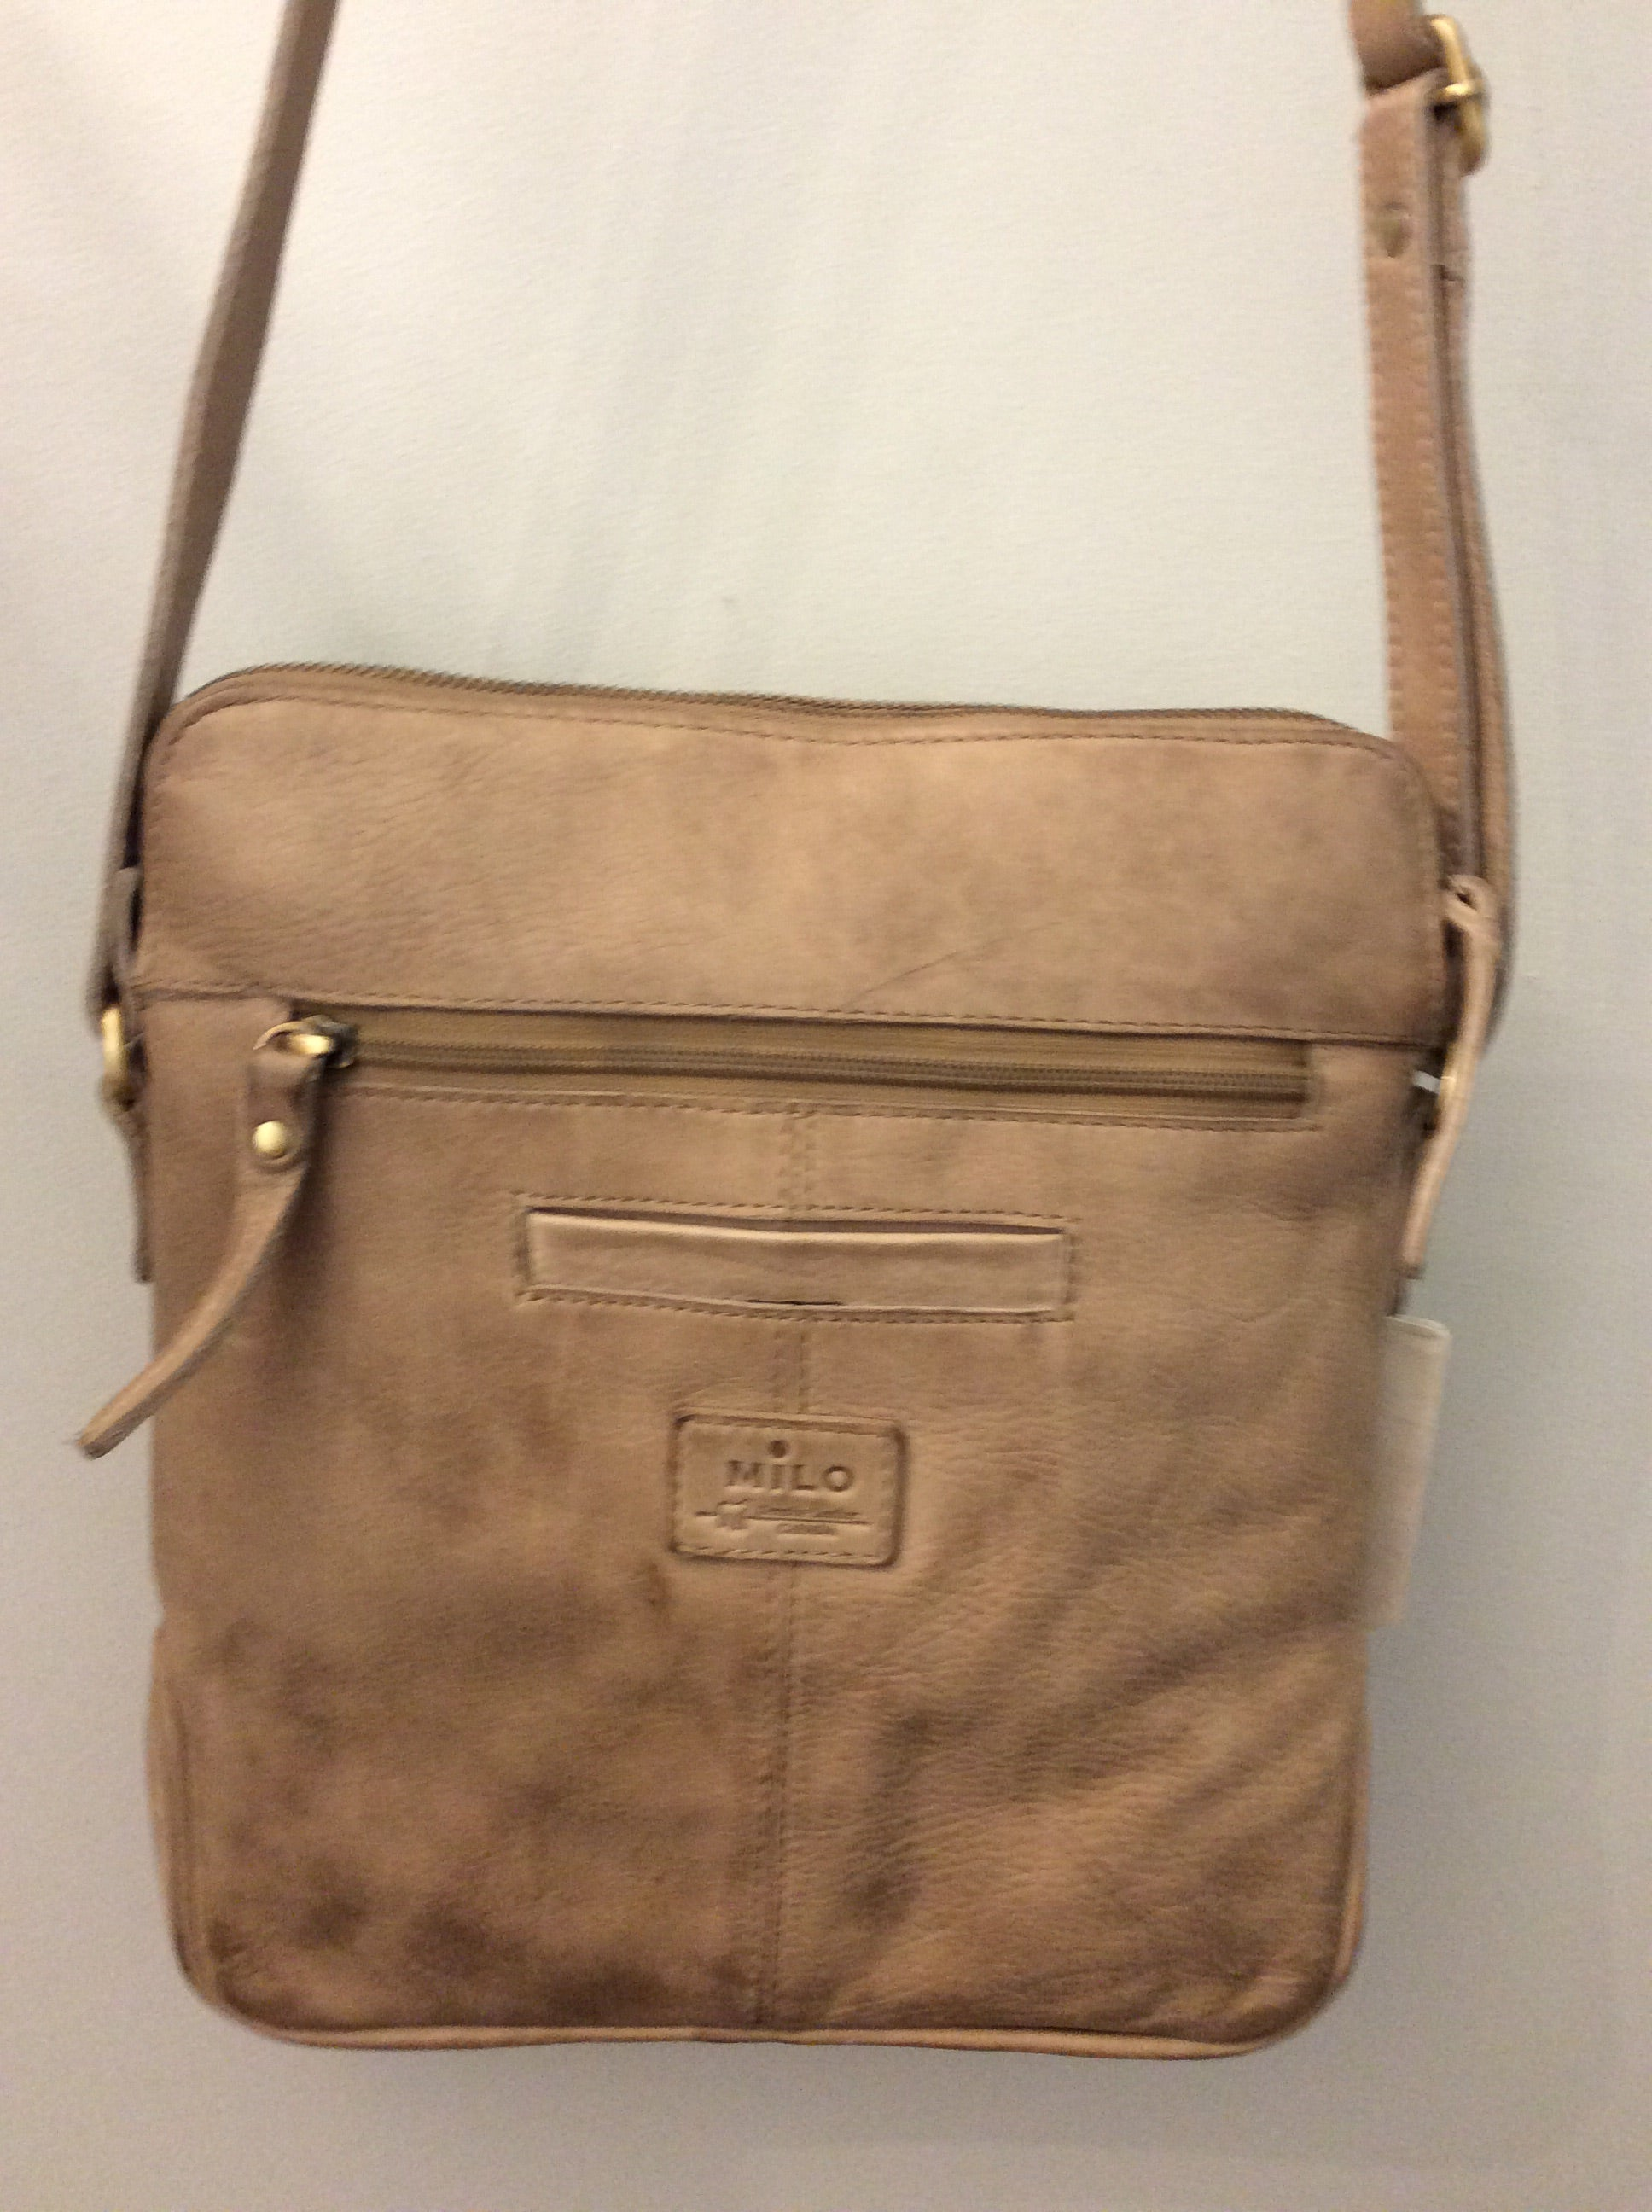 Mia Crossbody Leather Handbag